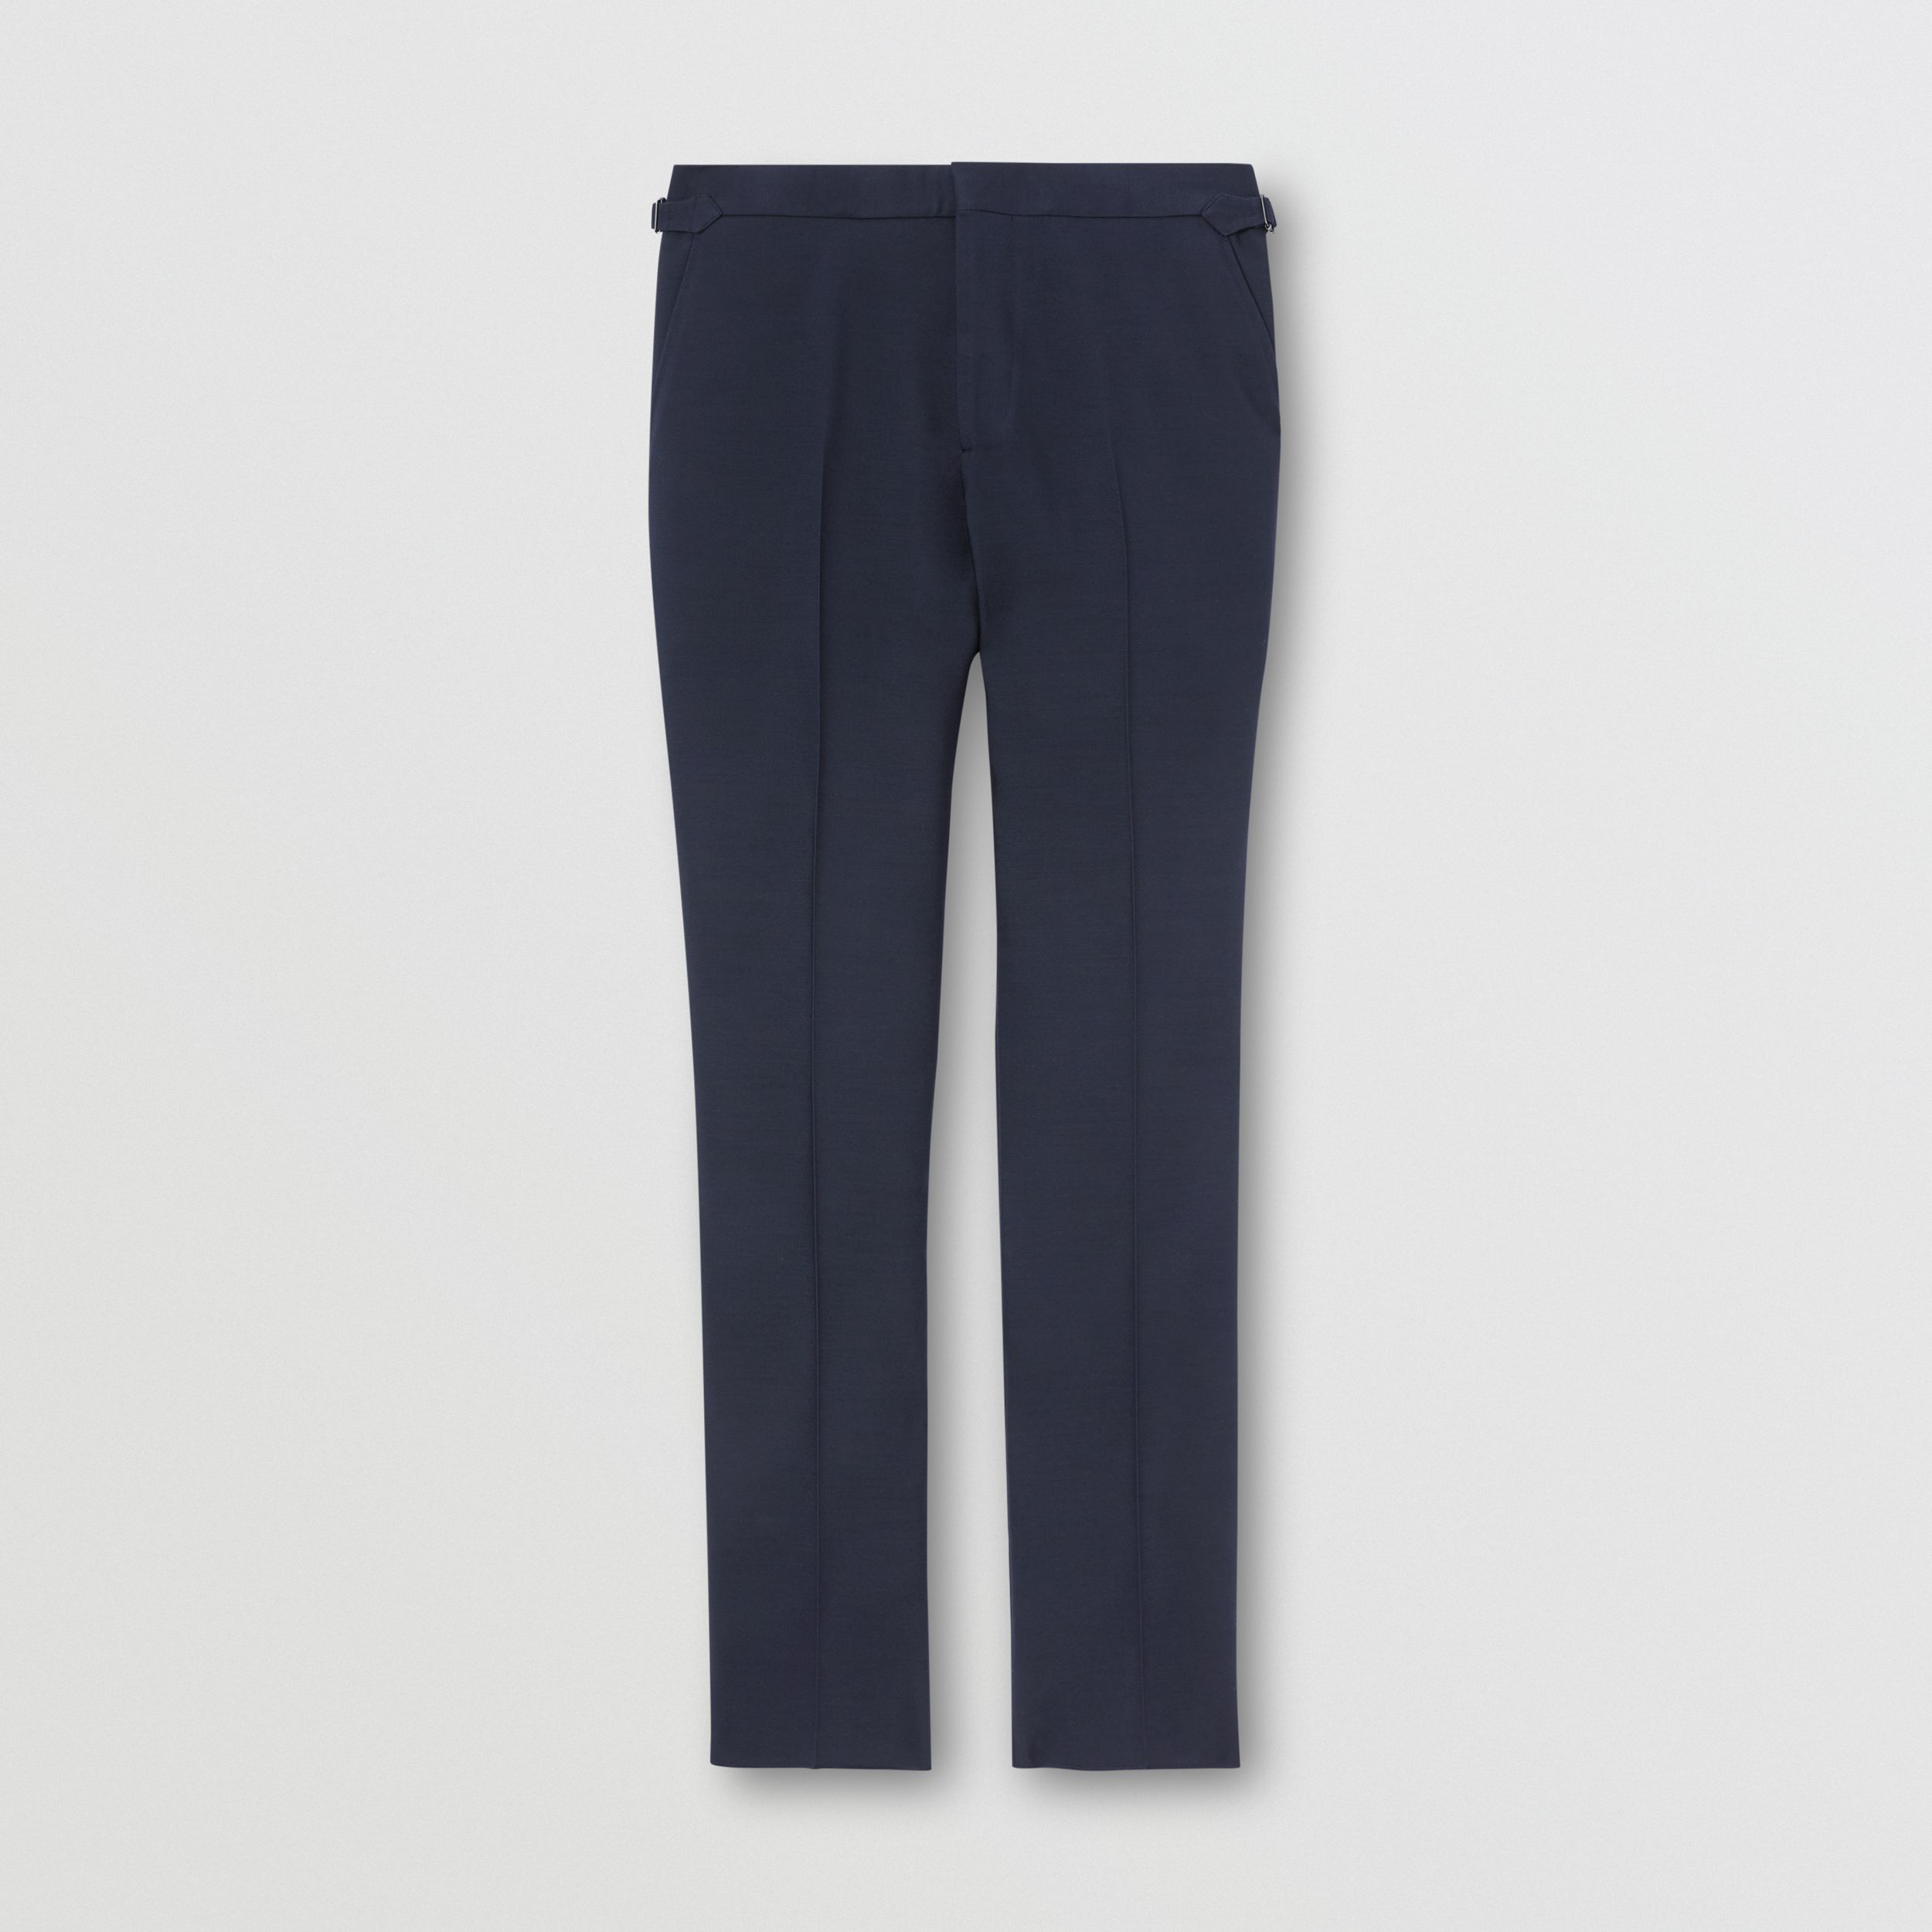 Classic Fit Wool Silk Blend Tailored Trousers in Navy - Men | Burberry - 4